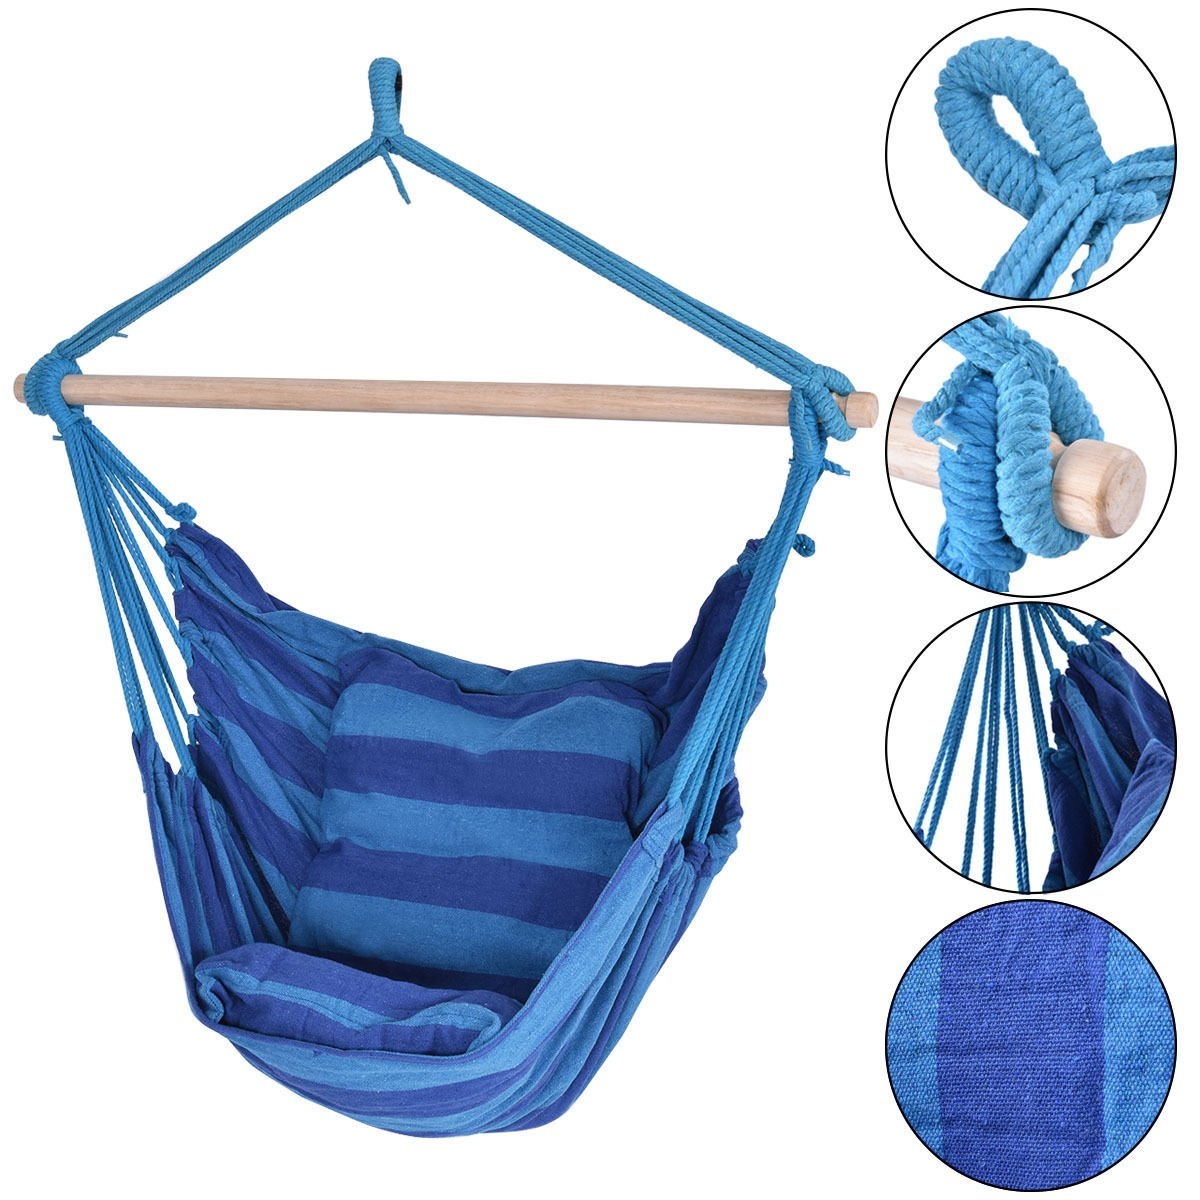 Blue Deluxe Hammock Rope Chair Patio Porch Yard Tree Hanging Air Swing Outdoor - 260lbs Capacity